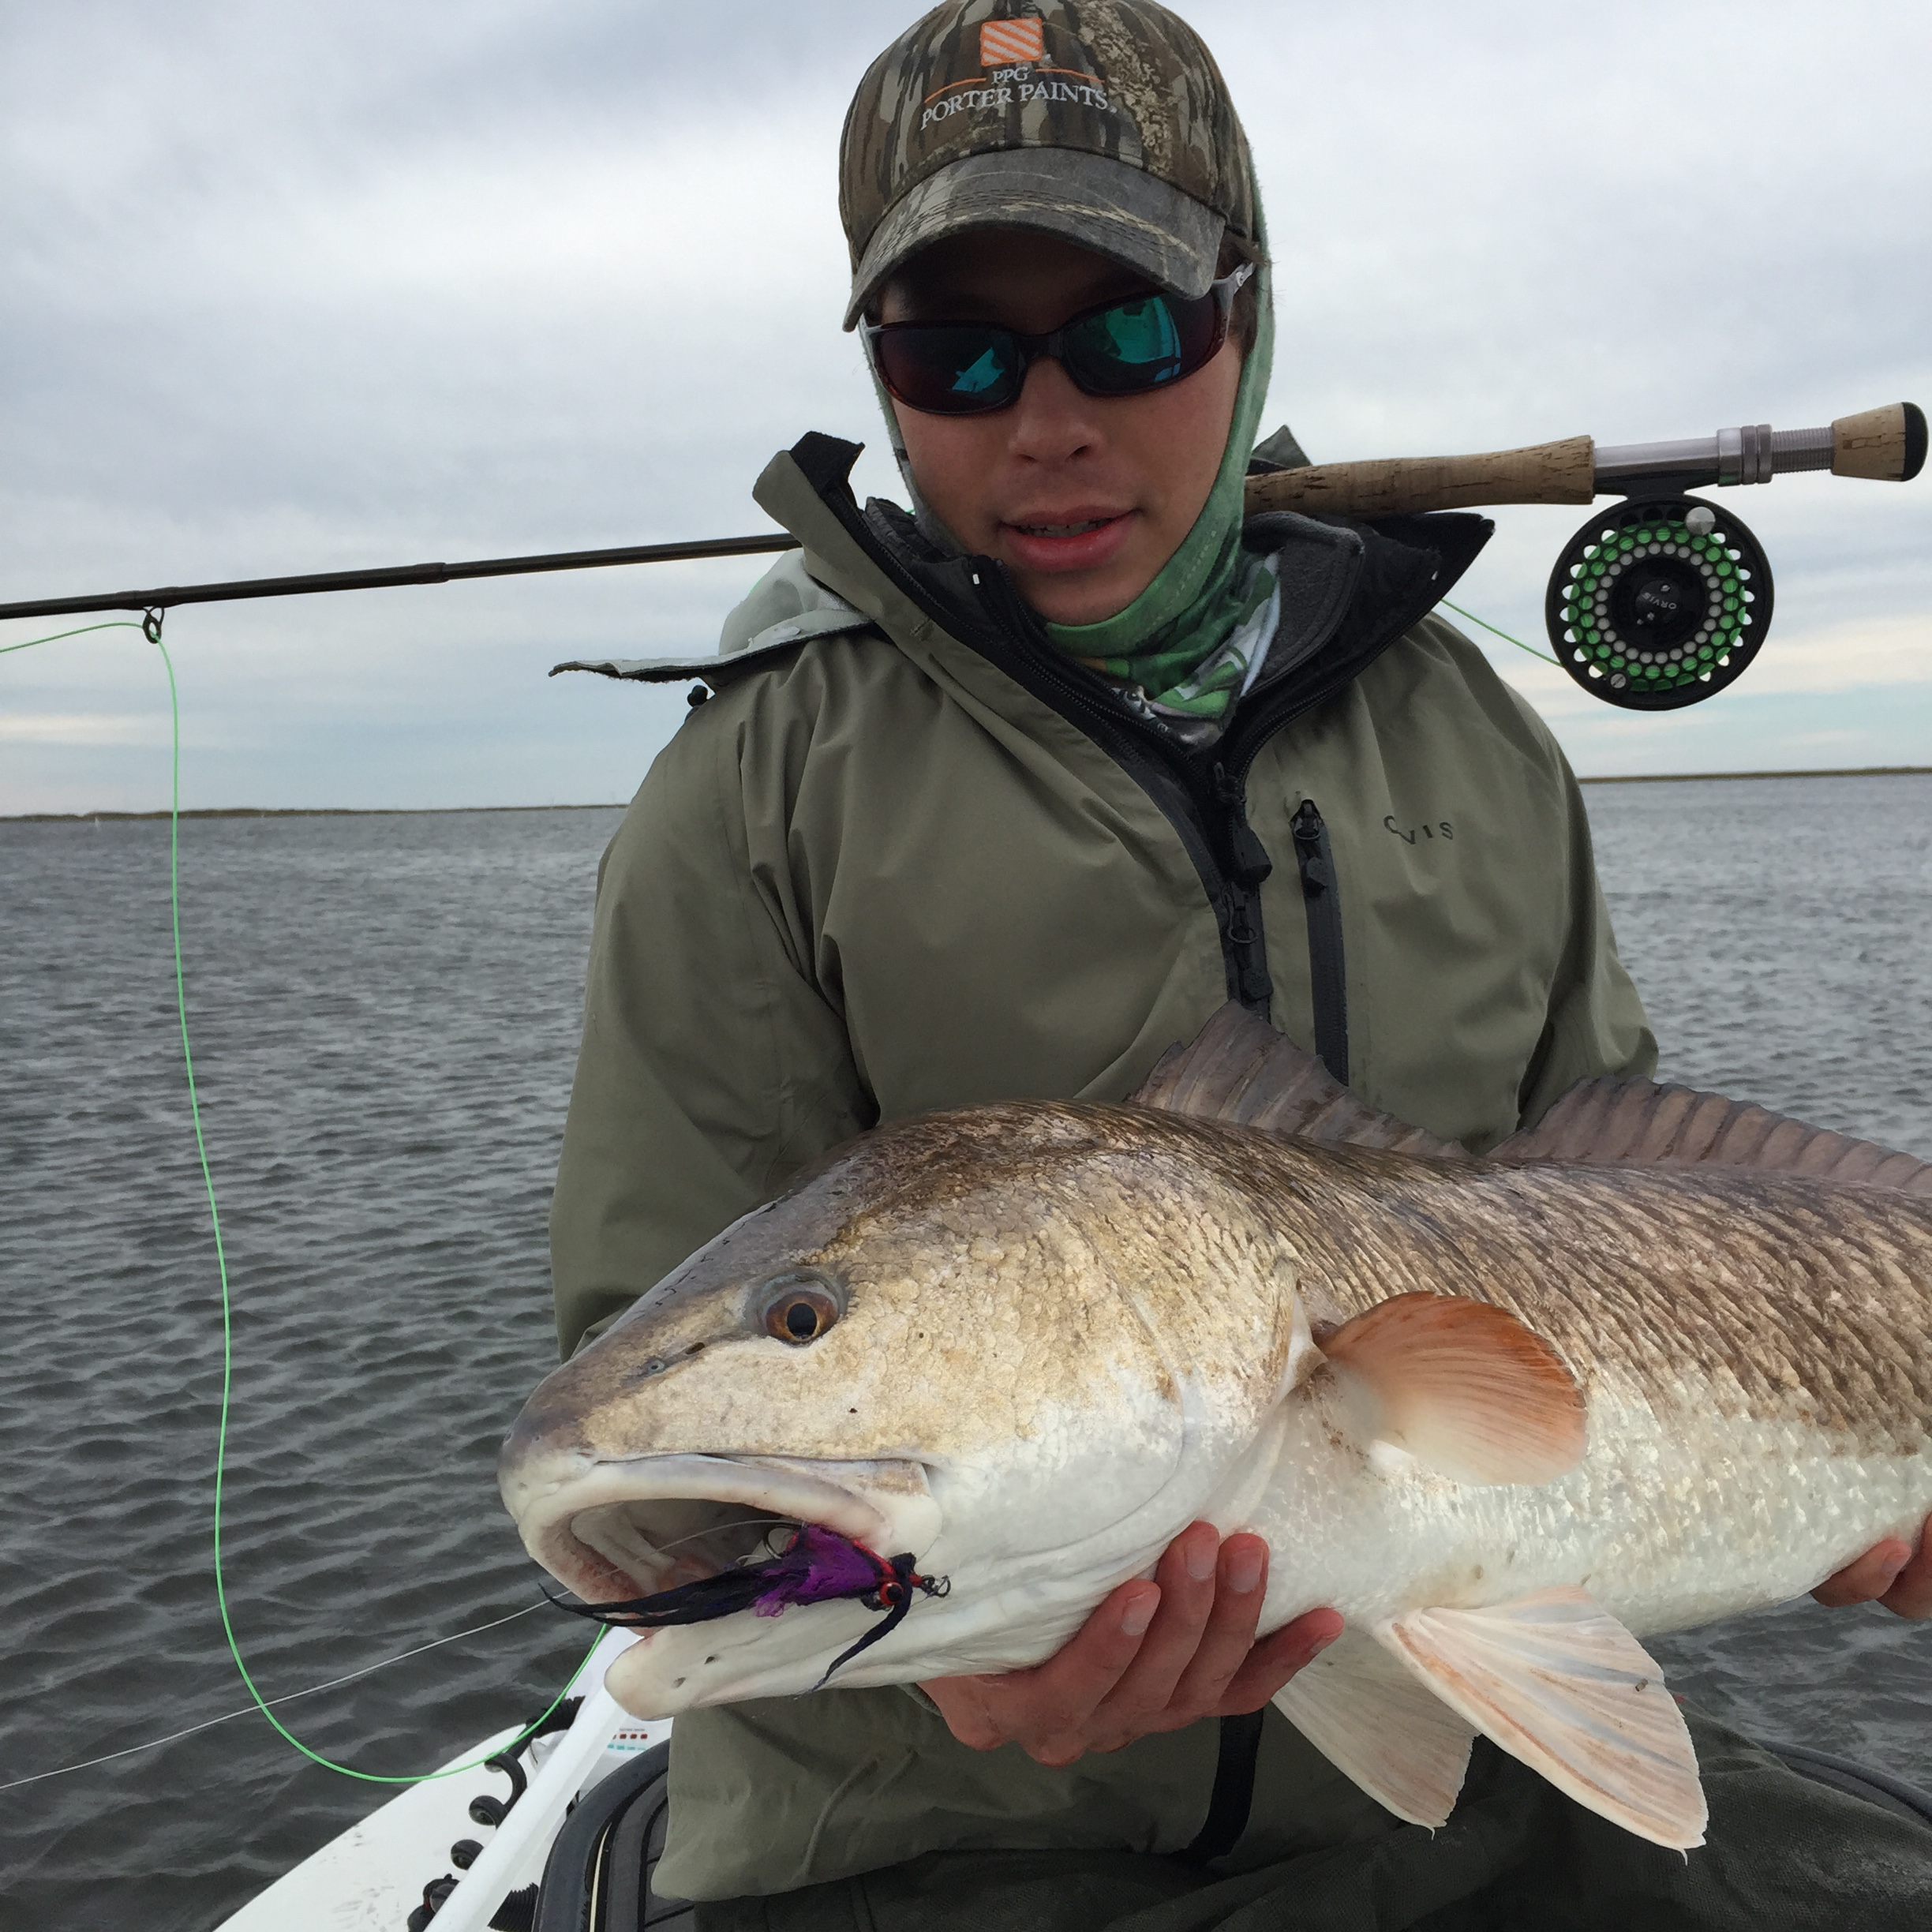 The Sandbar Mullet is dynamite for Louisiana Reds!